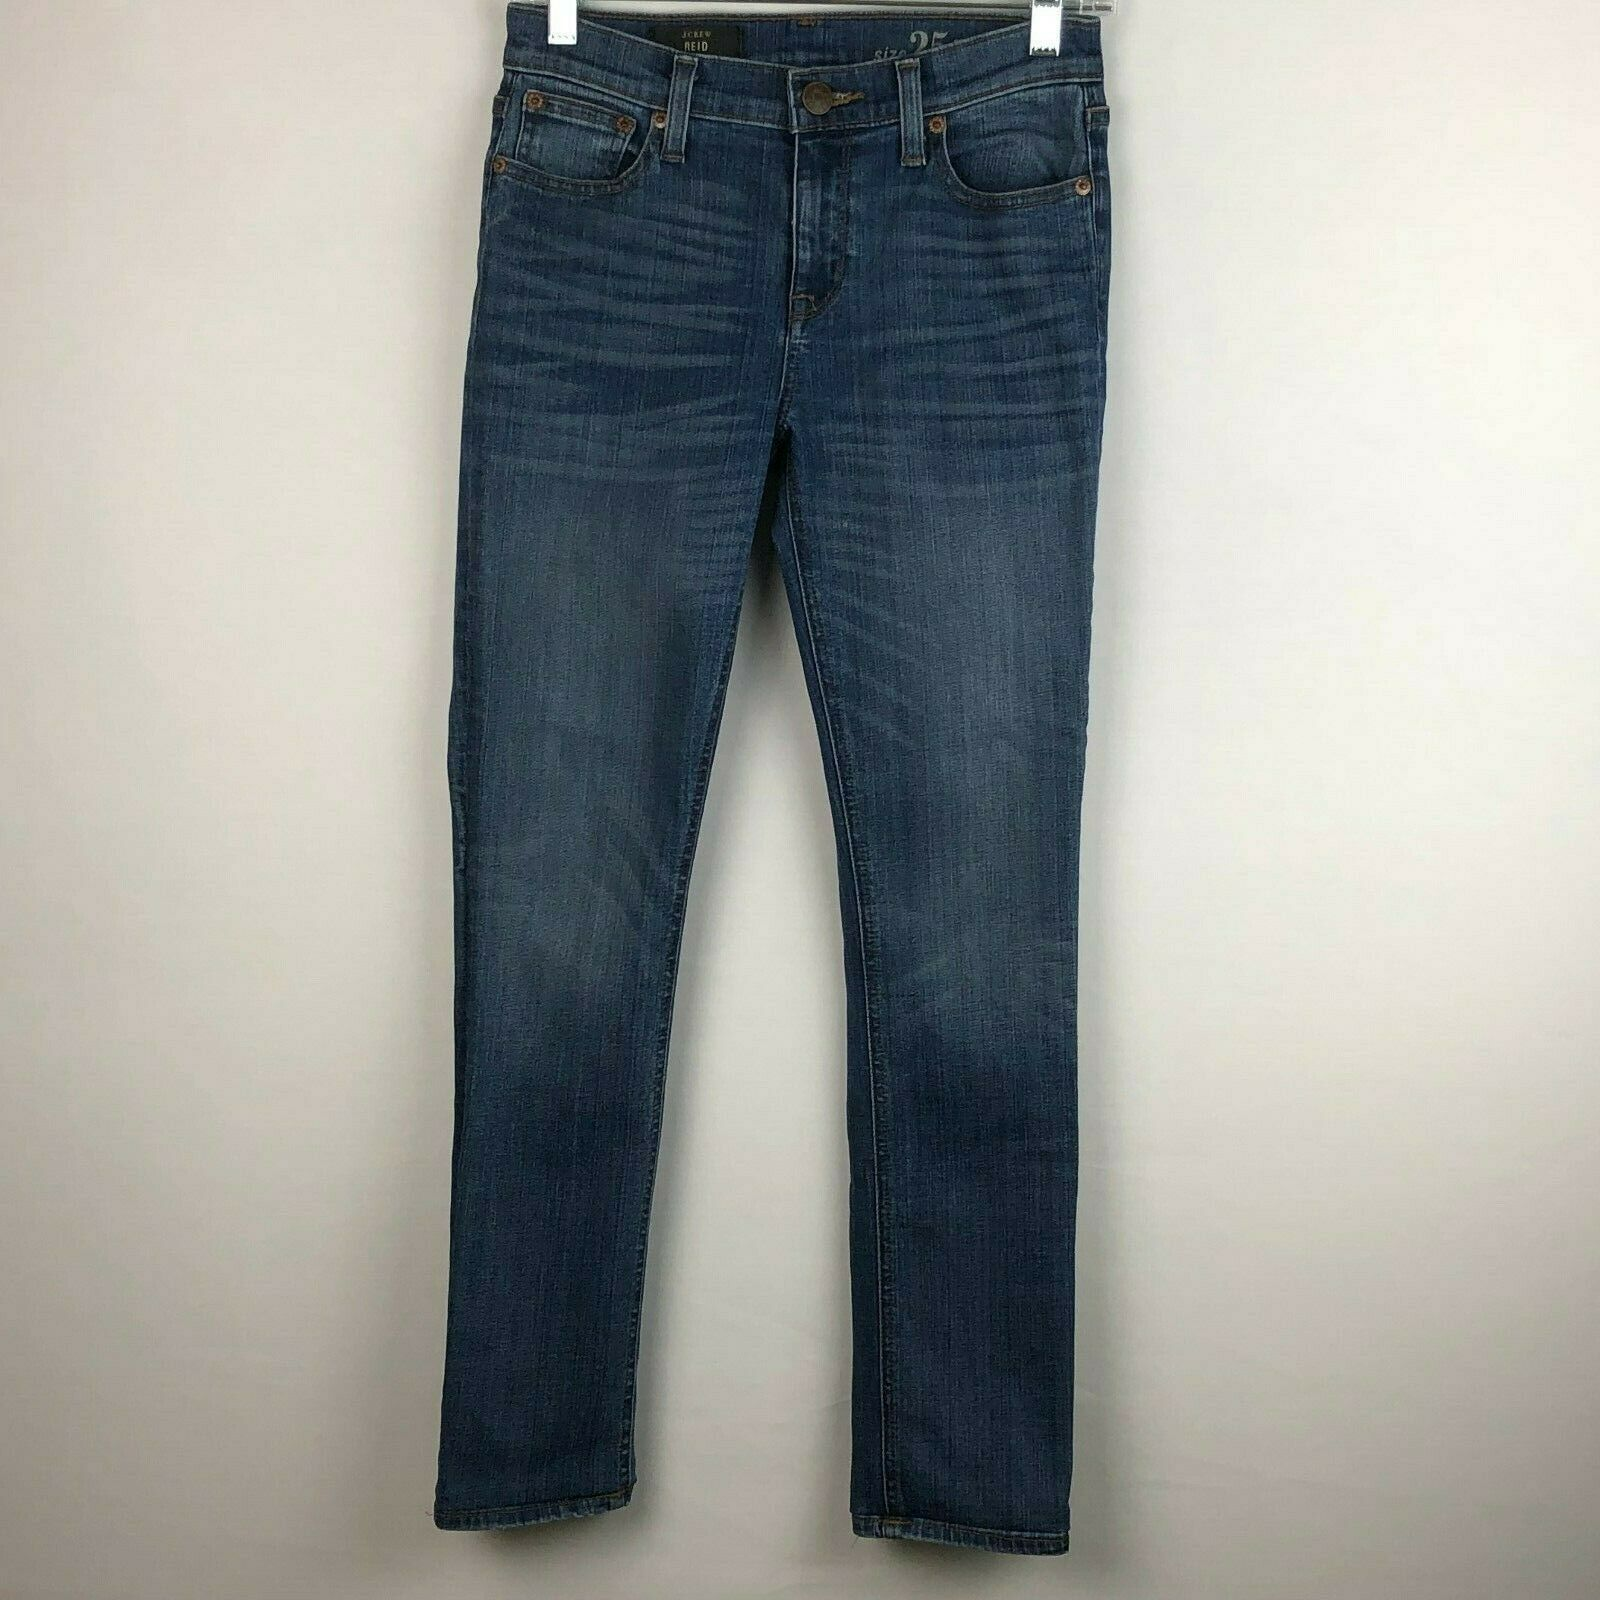 J Crew Para Mujer Reid Jeans Tobillera 25 P real real real de 26 X 27.5 ad6e06